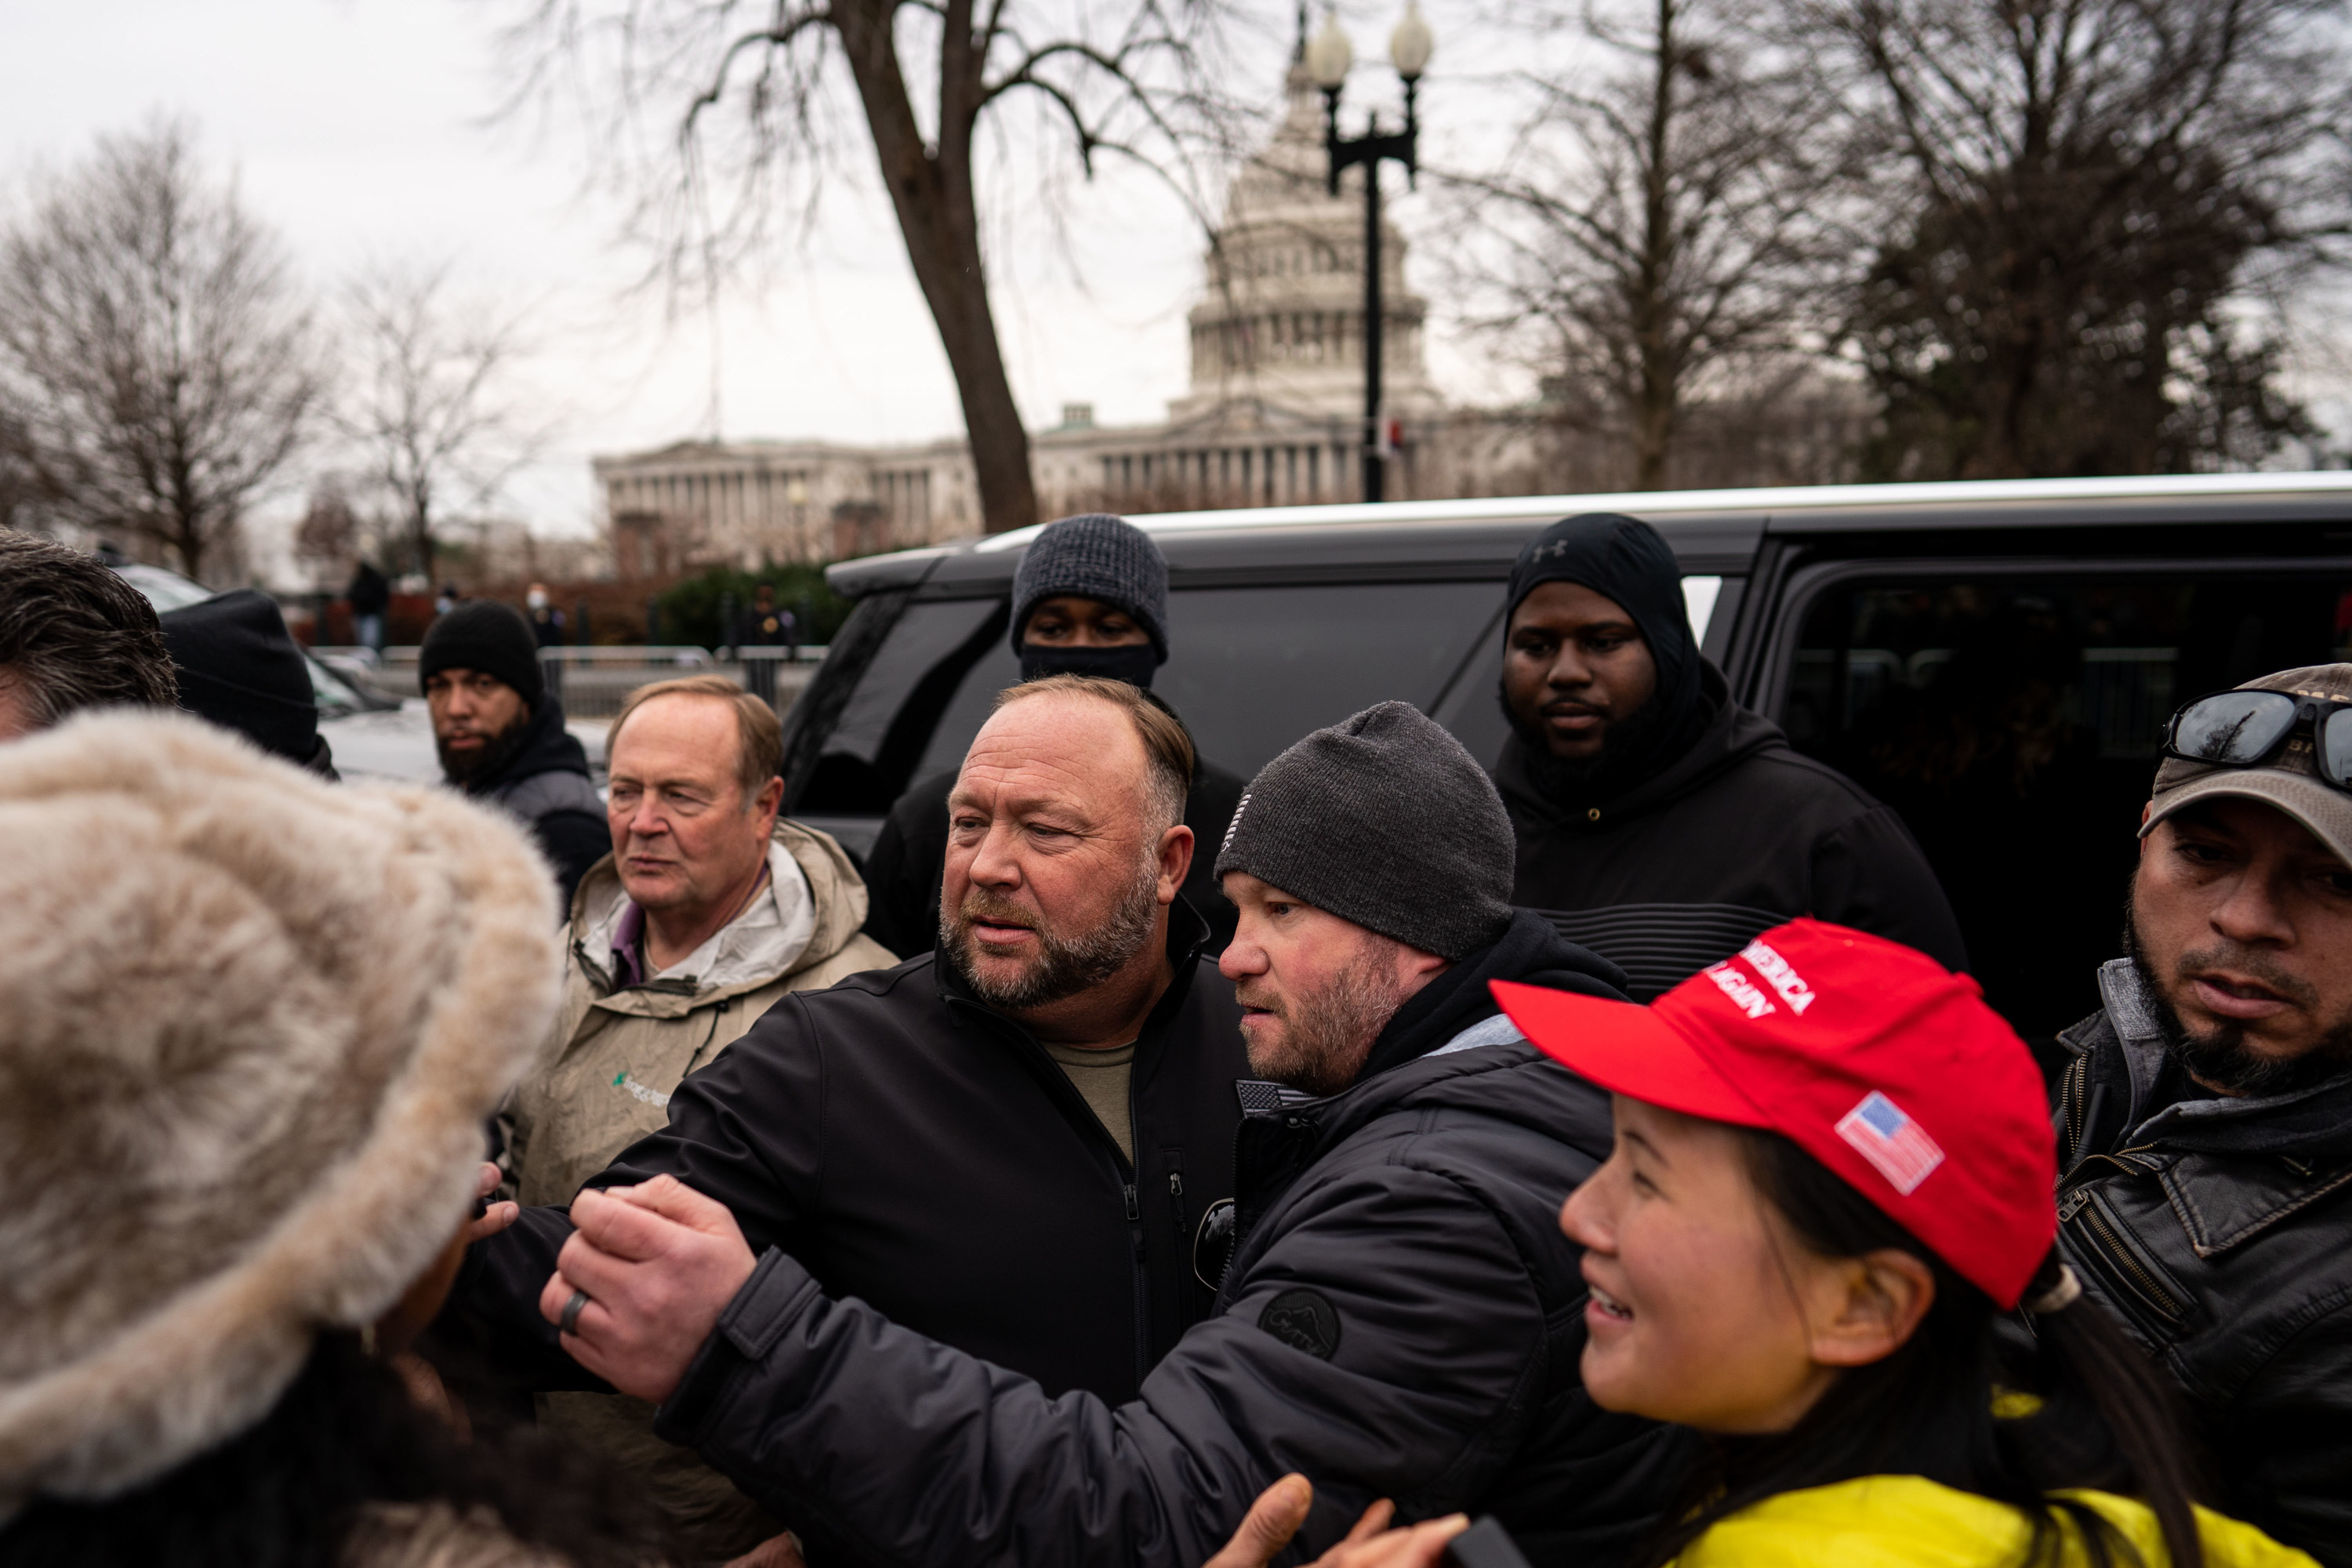 Alex Jones leaves after speaking at a Stop The Steal rally